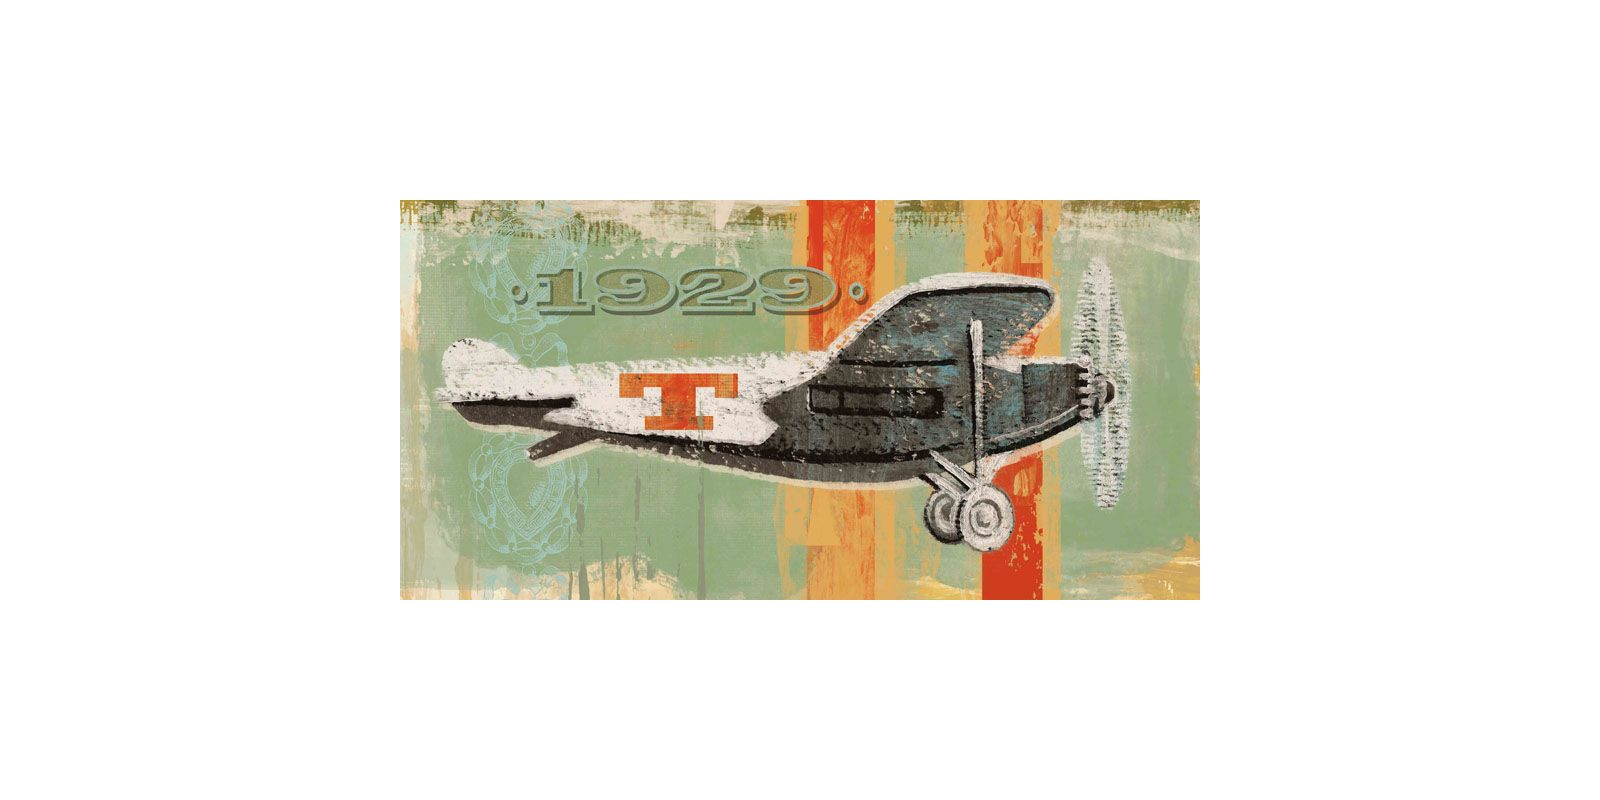 Marmont Hill Vintage Plane 1929 Painting Print on Canvas 22 1/2 x 45